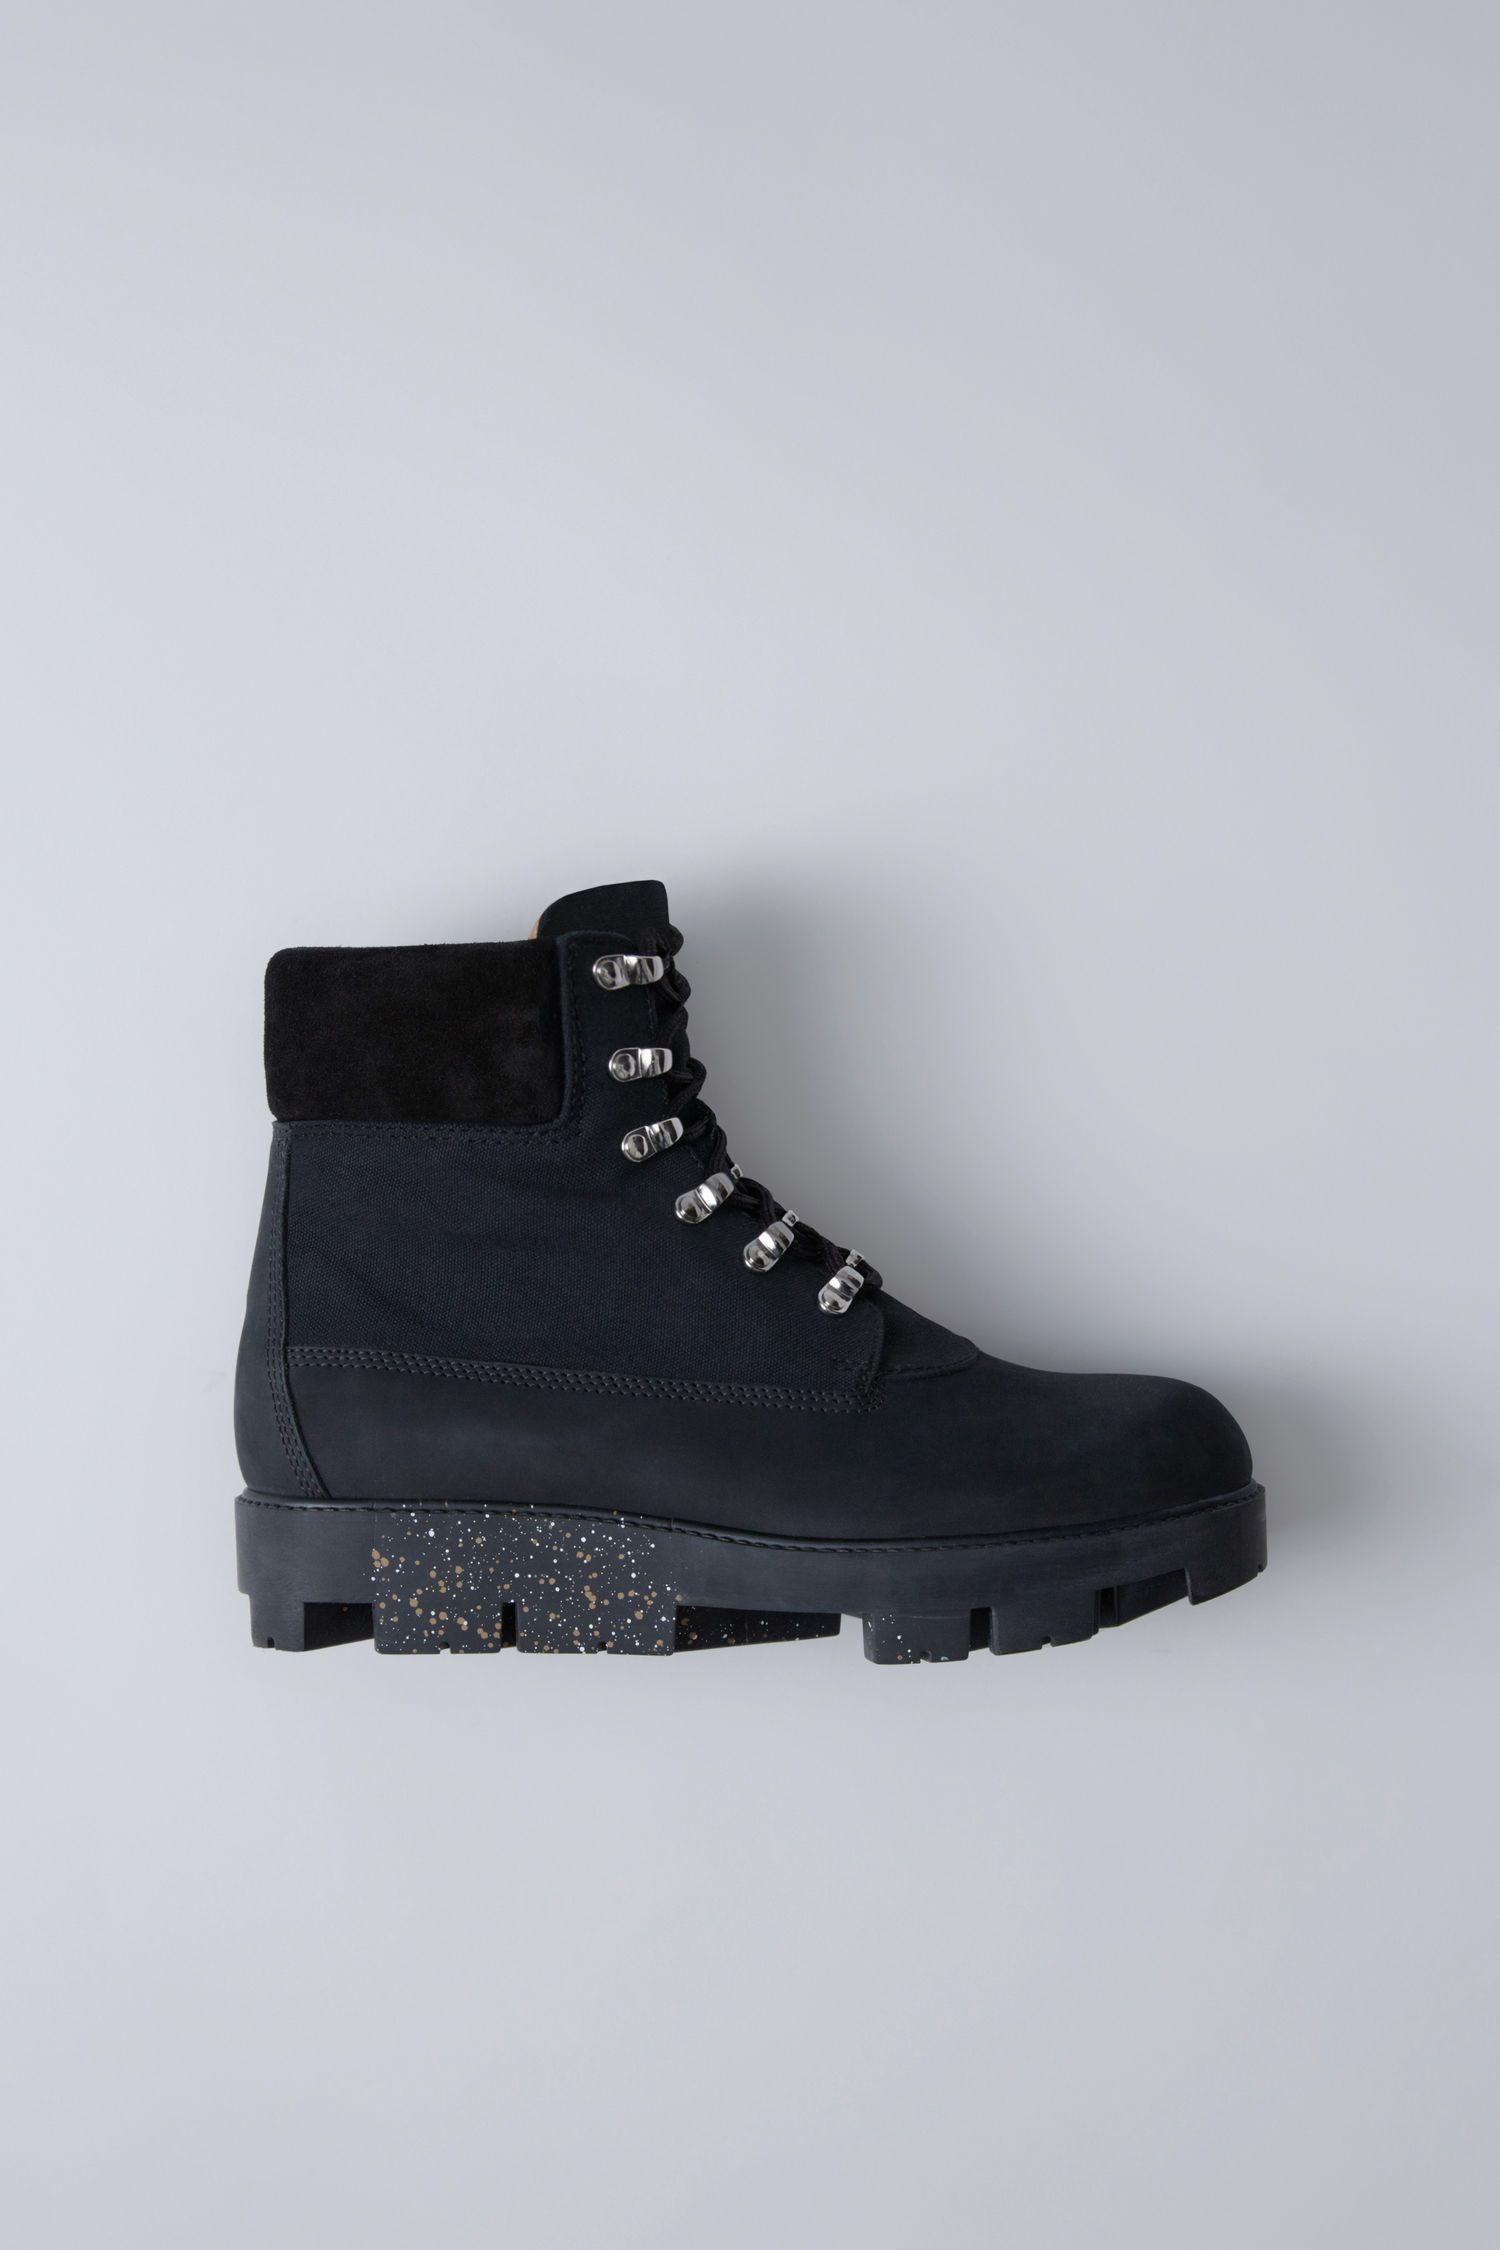 73cf0d72ba7 ACNE STUDIOS Ugo black. #acnestudios #shoes # | Acne Studios Men ...